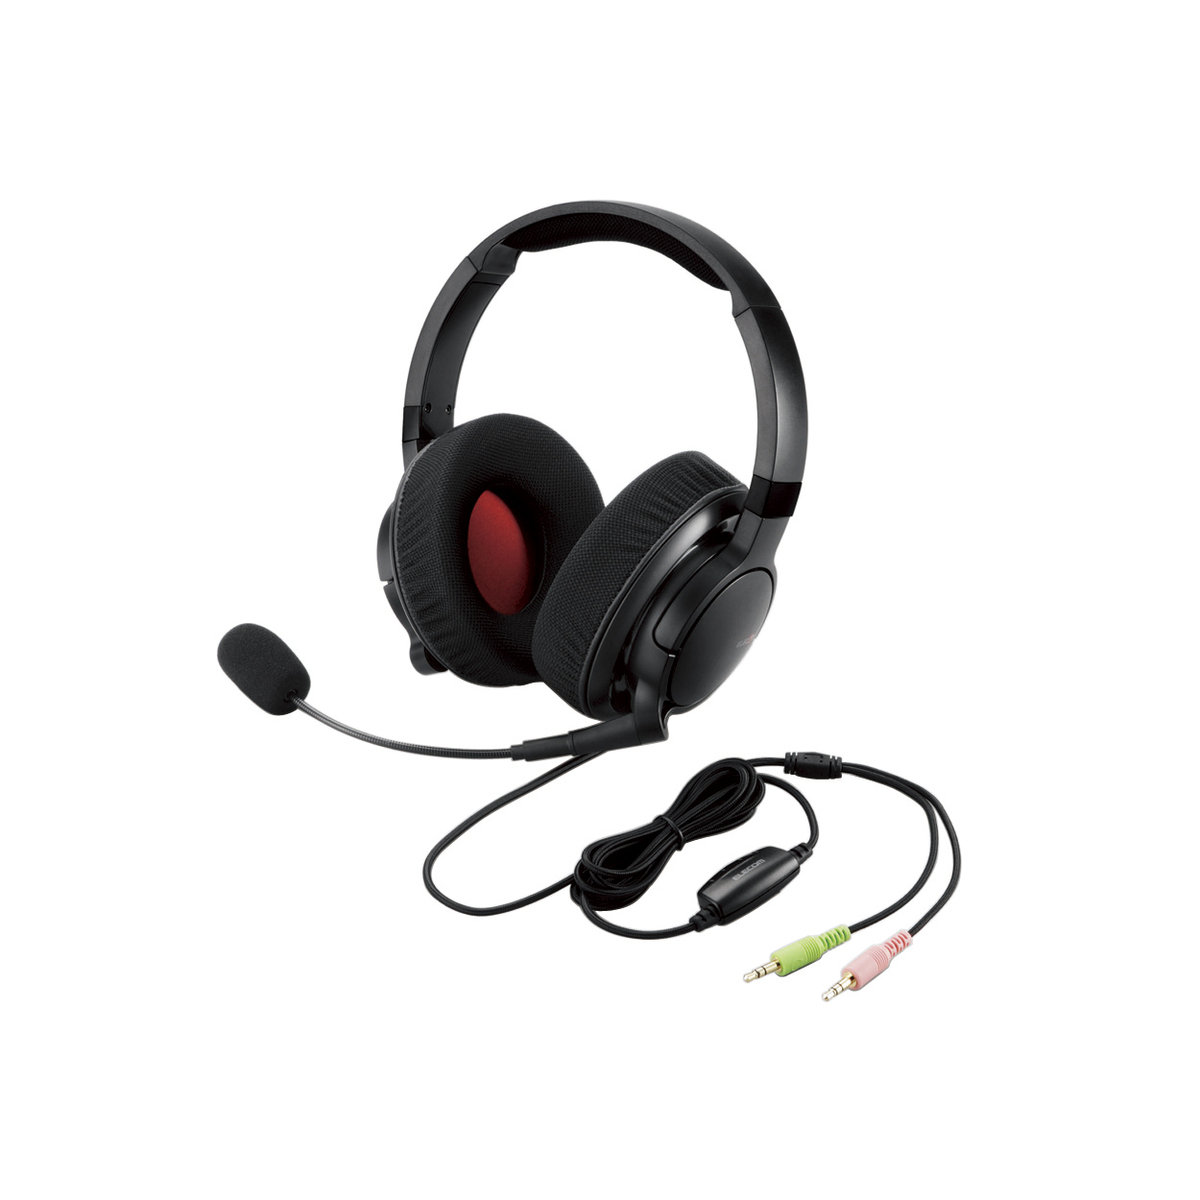 Stereo overhead headset for MMO gaming/DUX series/Retail store model